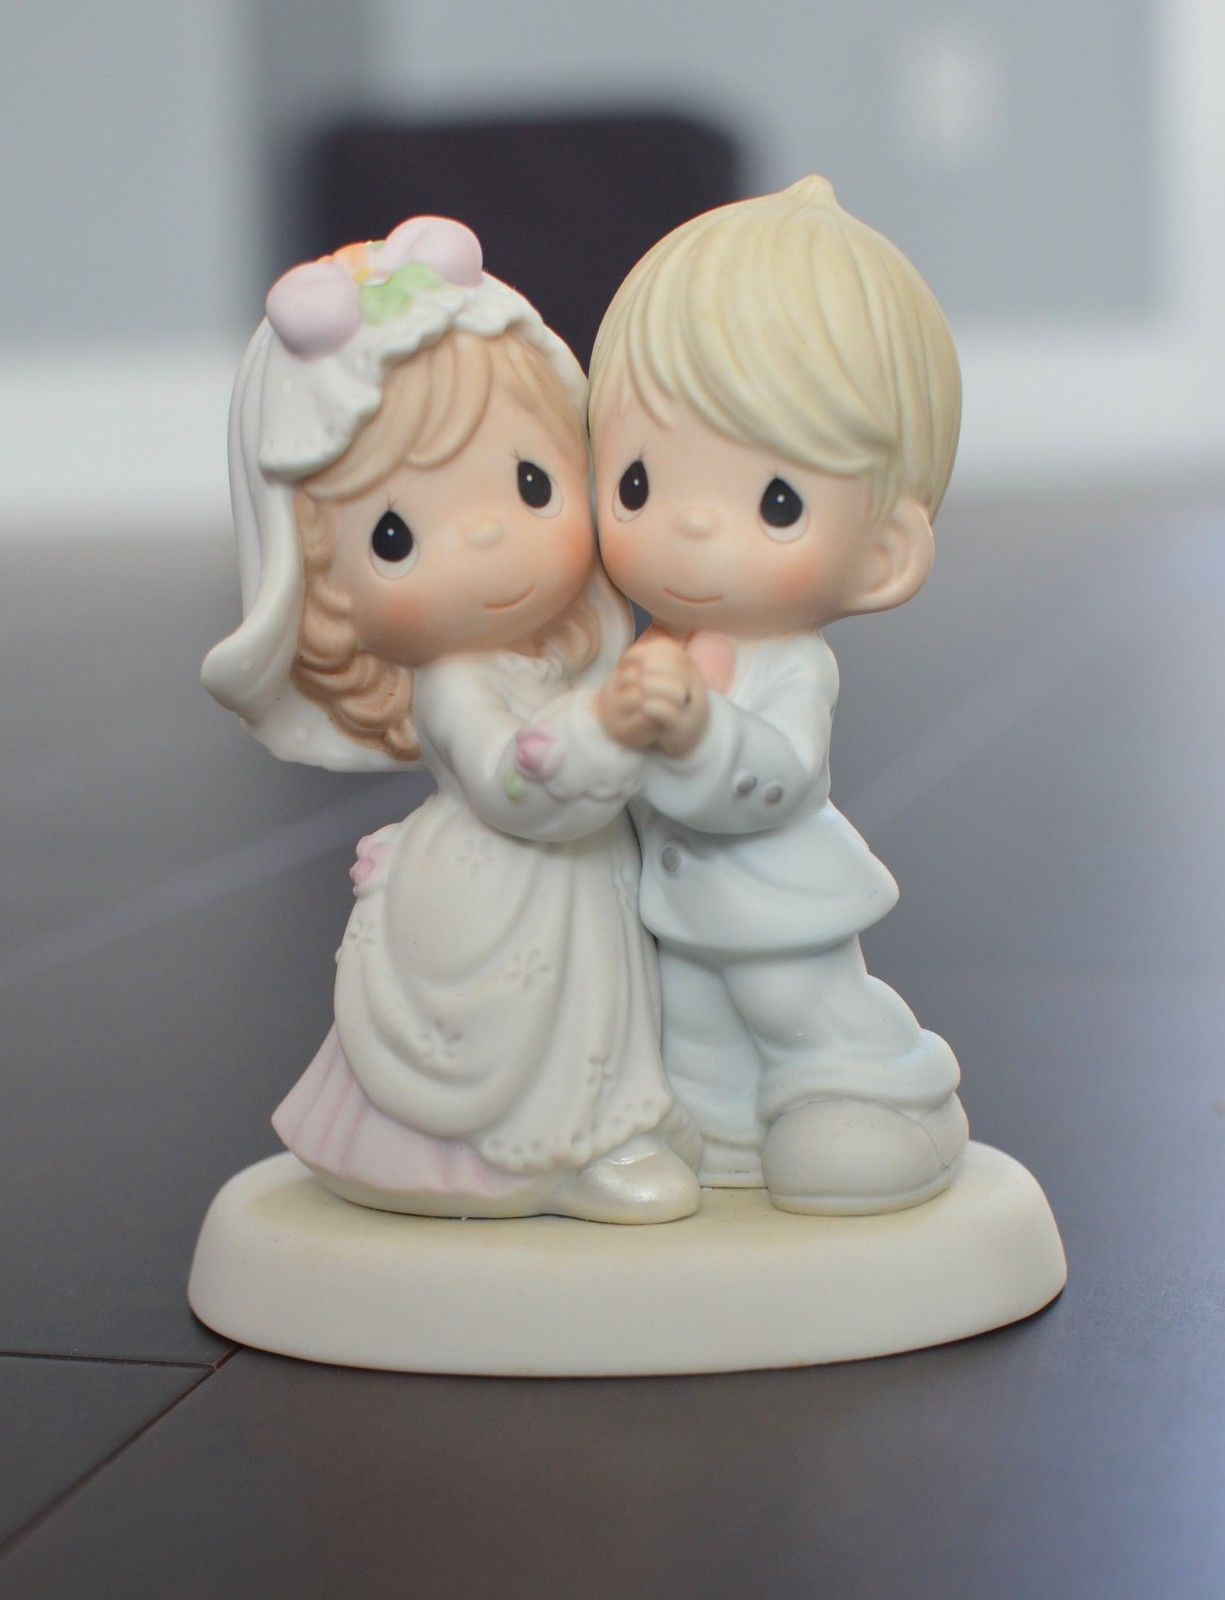 Precious Moment Cake Toppers Shop Precious Moment Cake Toppers Online